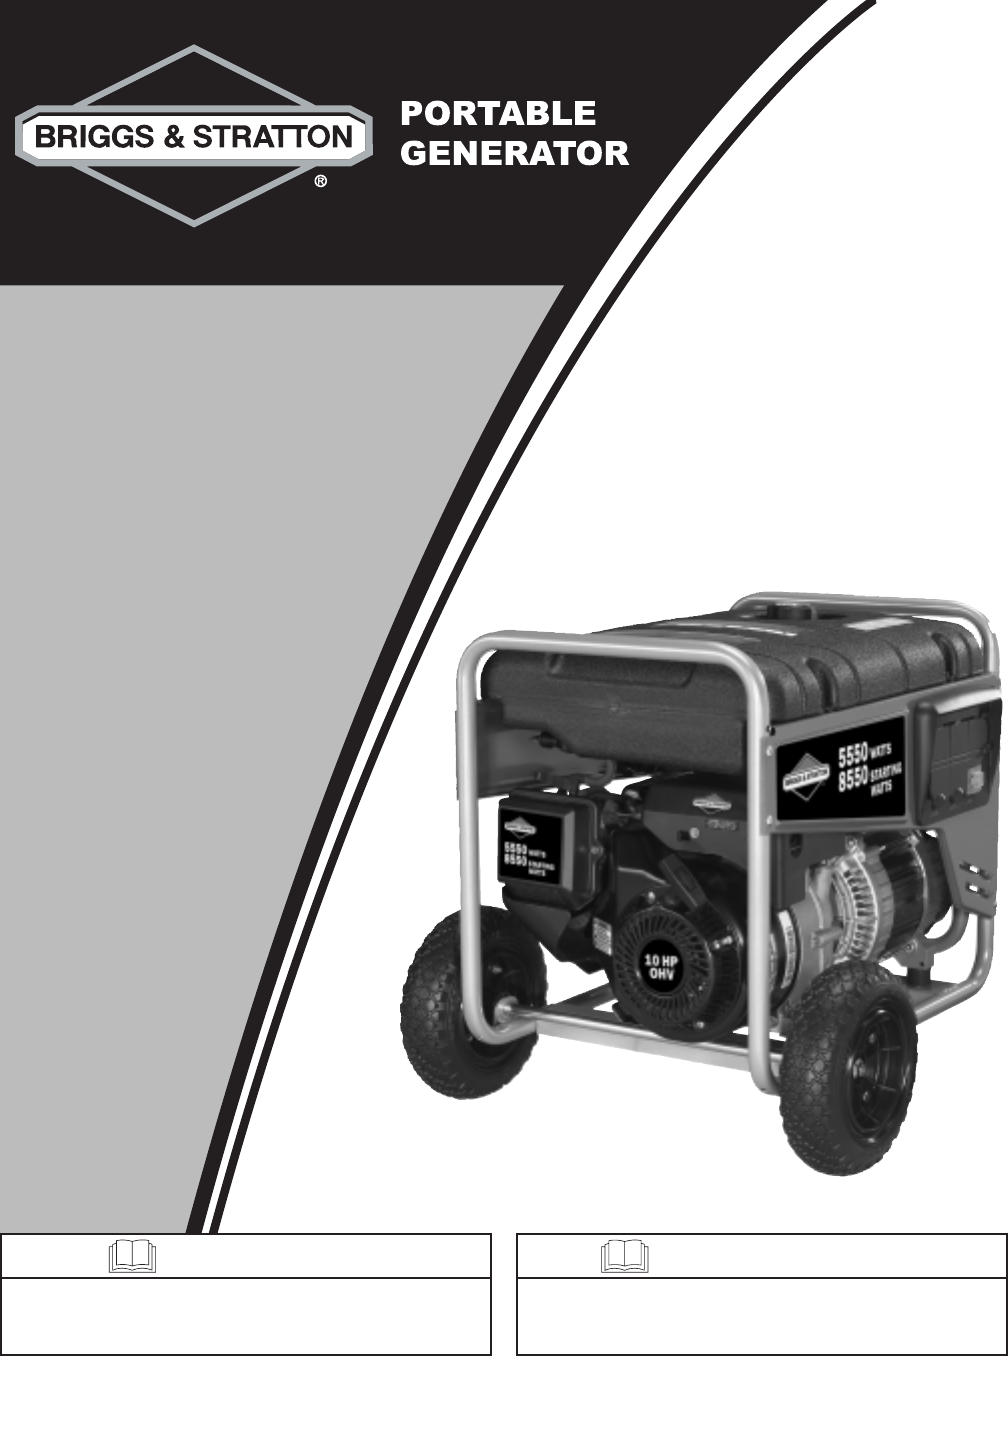 briggs stratton portable generator 030235 01 user guide rh lawnandgarden manualsonline com briggs & stratton 5000 watt portable generator manual briggs & stratton portable generator repair manual